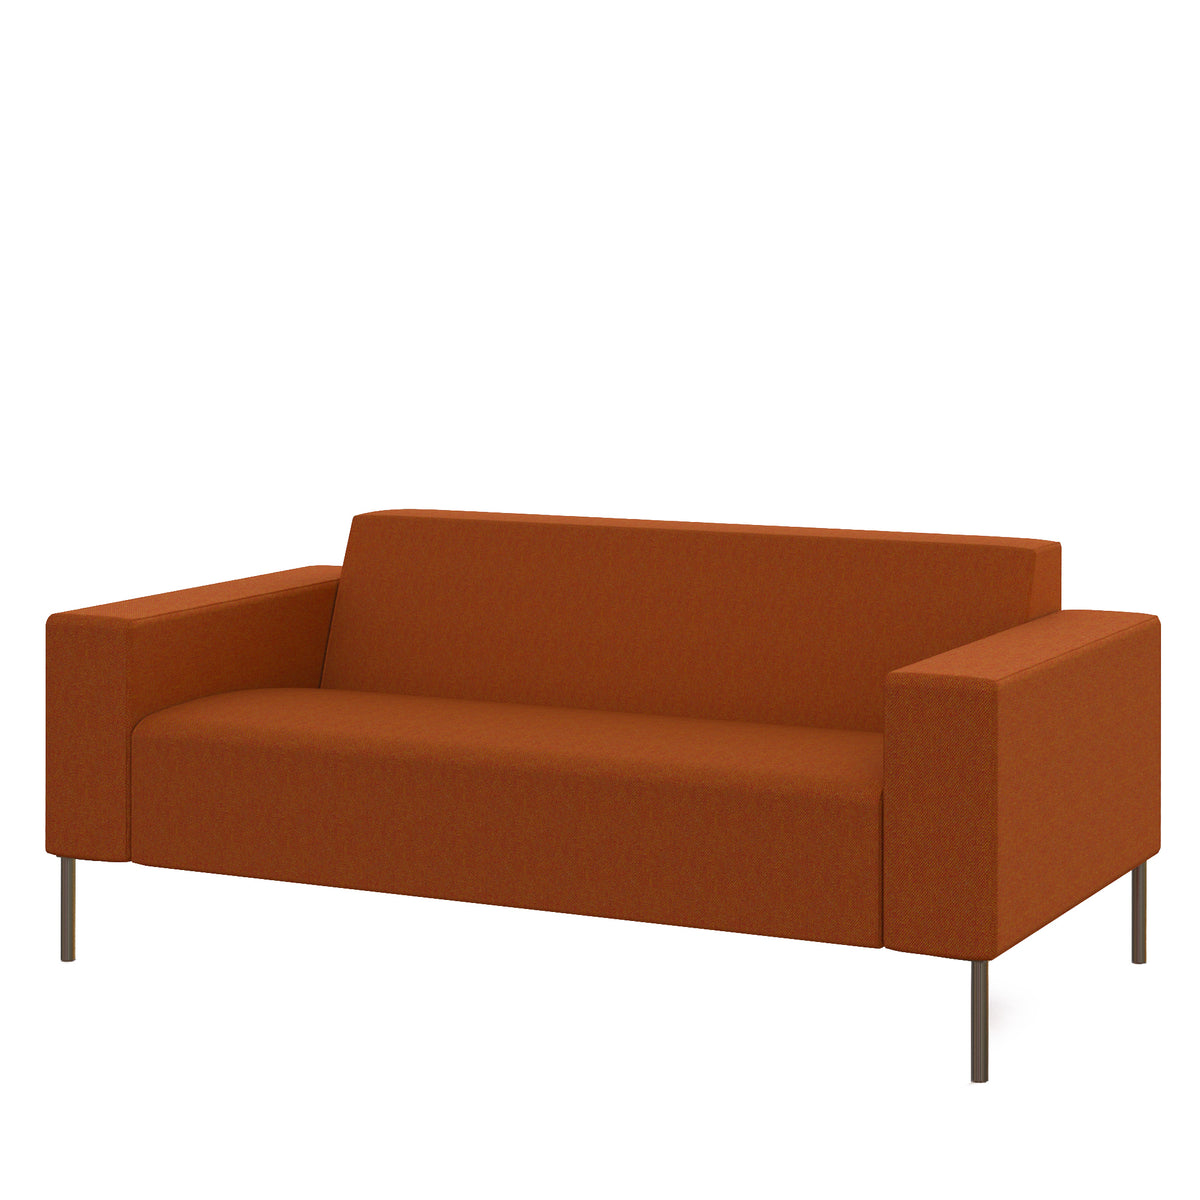 Hitch Mylius Office HM18 Leyton Origin Two Seat Sofa with Brushed Stainless Steel Legs